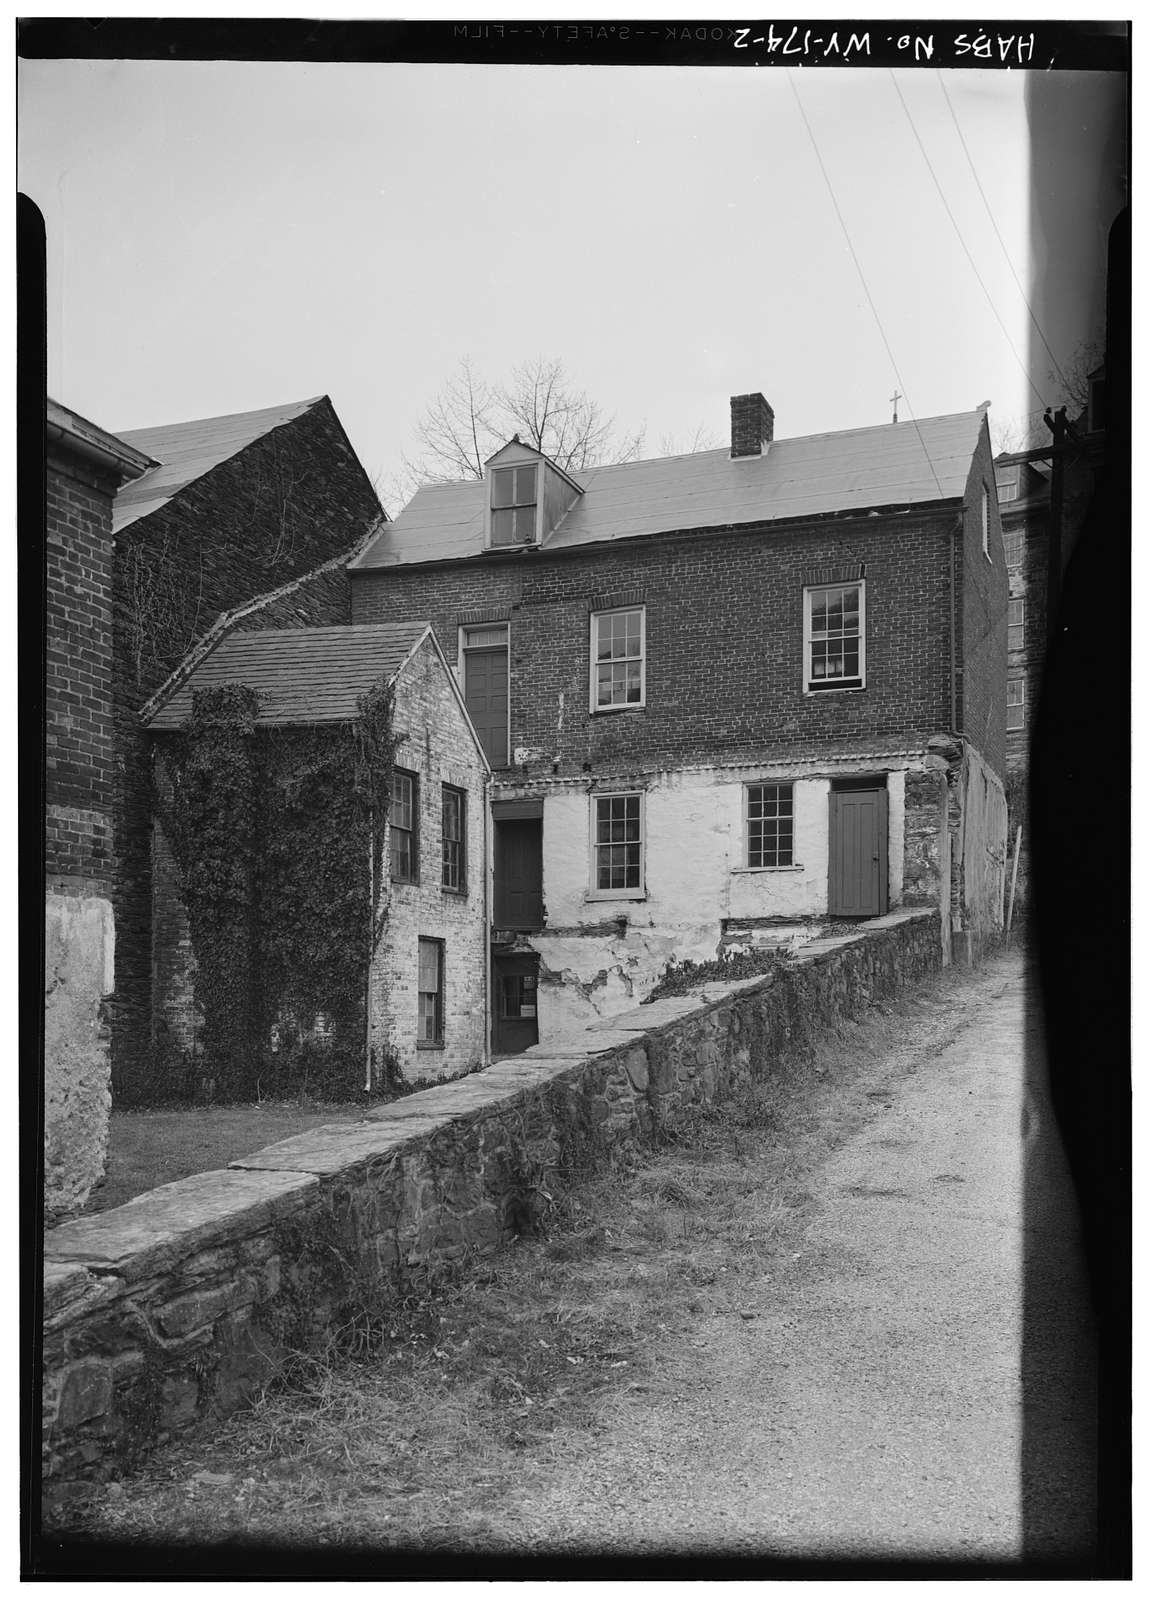 Roeder House, Northeast corner of High Street & Hog Alley, Harpers Ferry, Jefferson County, WV